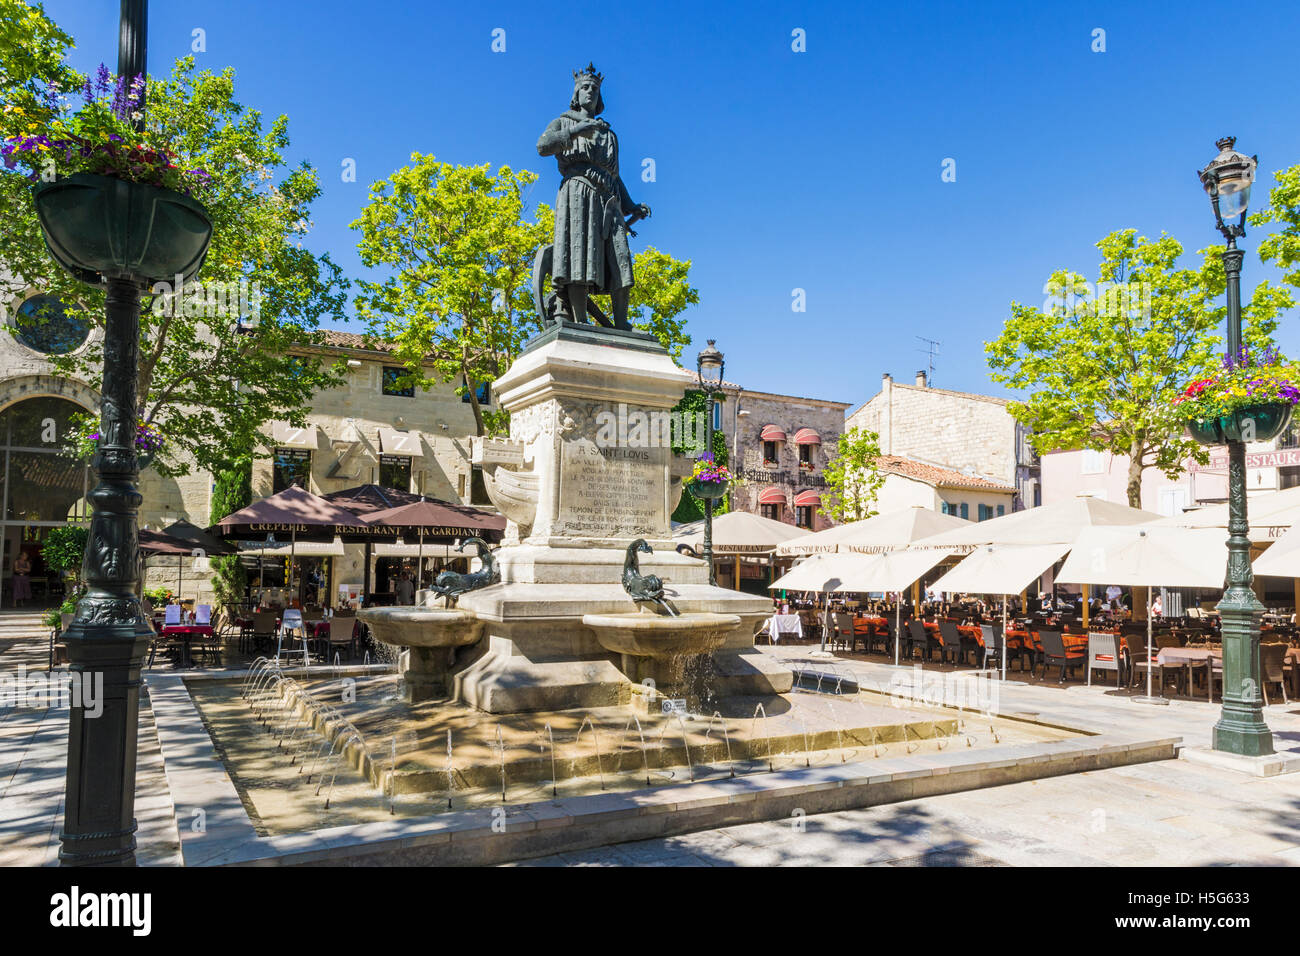 Statue of Saint Louis on a fountain plinth in the cafe lined Place Saint-Louis, Aigues Mortes, Nimes, Gard, France - Stock Image